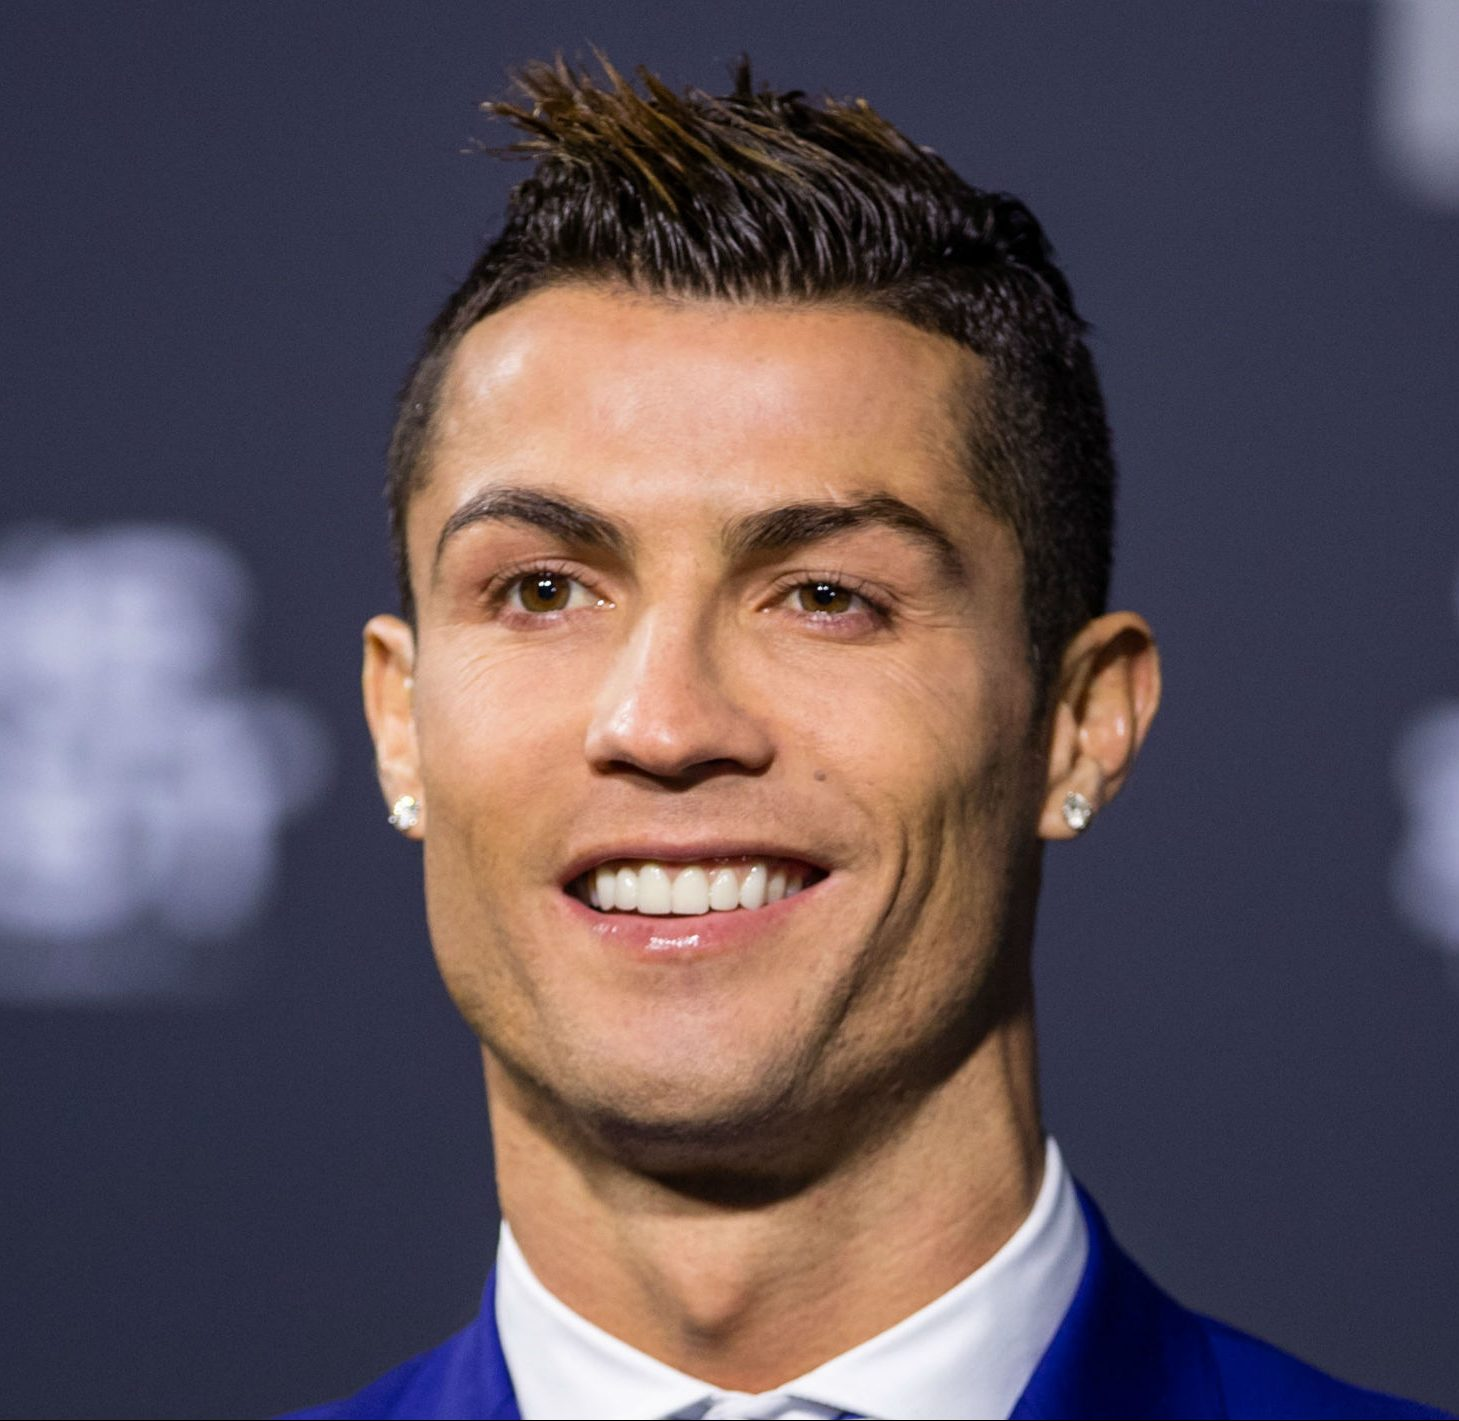 Cristiano Ronaldo Hairstyles cristiano ronaldo hairstyles cr7 spiky hair Sky Sports The Cristiano Ronaldo Haircut